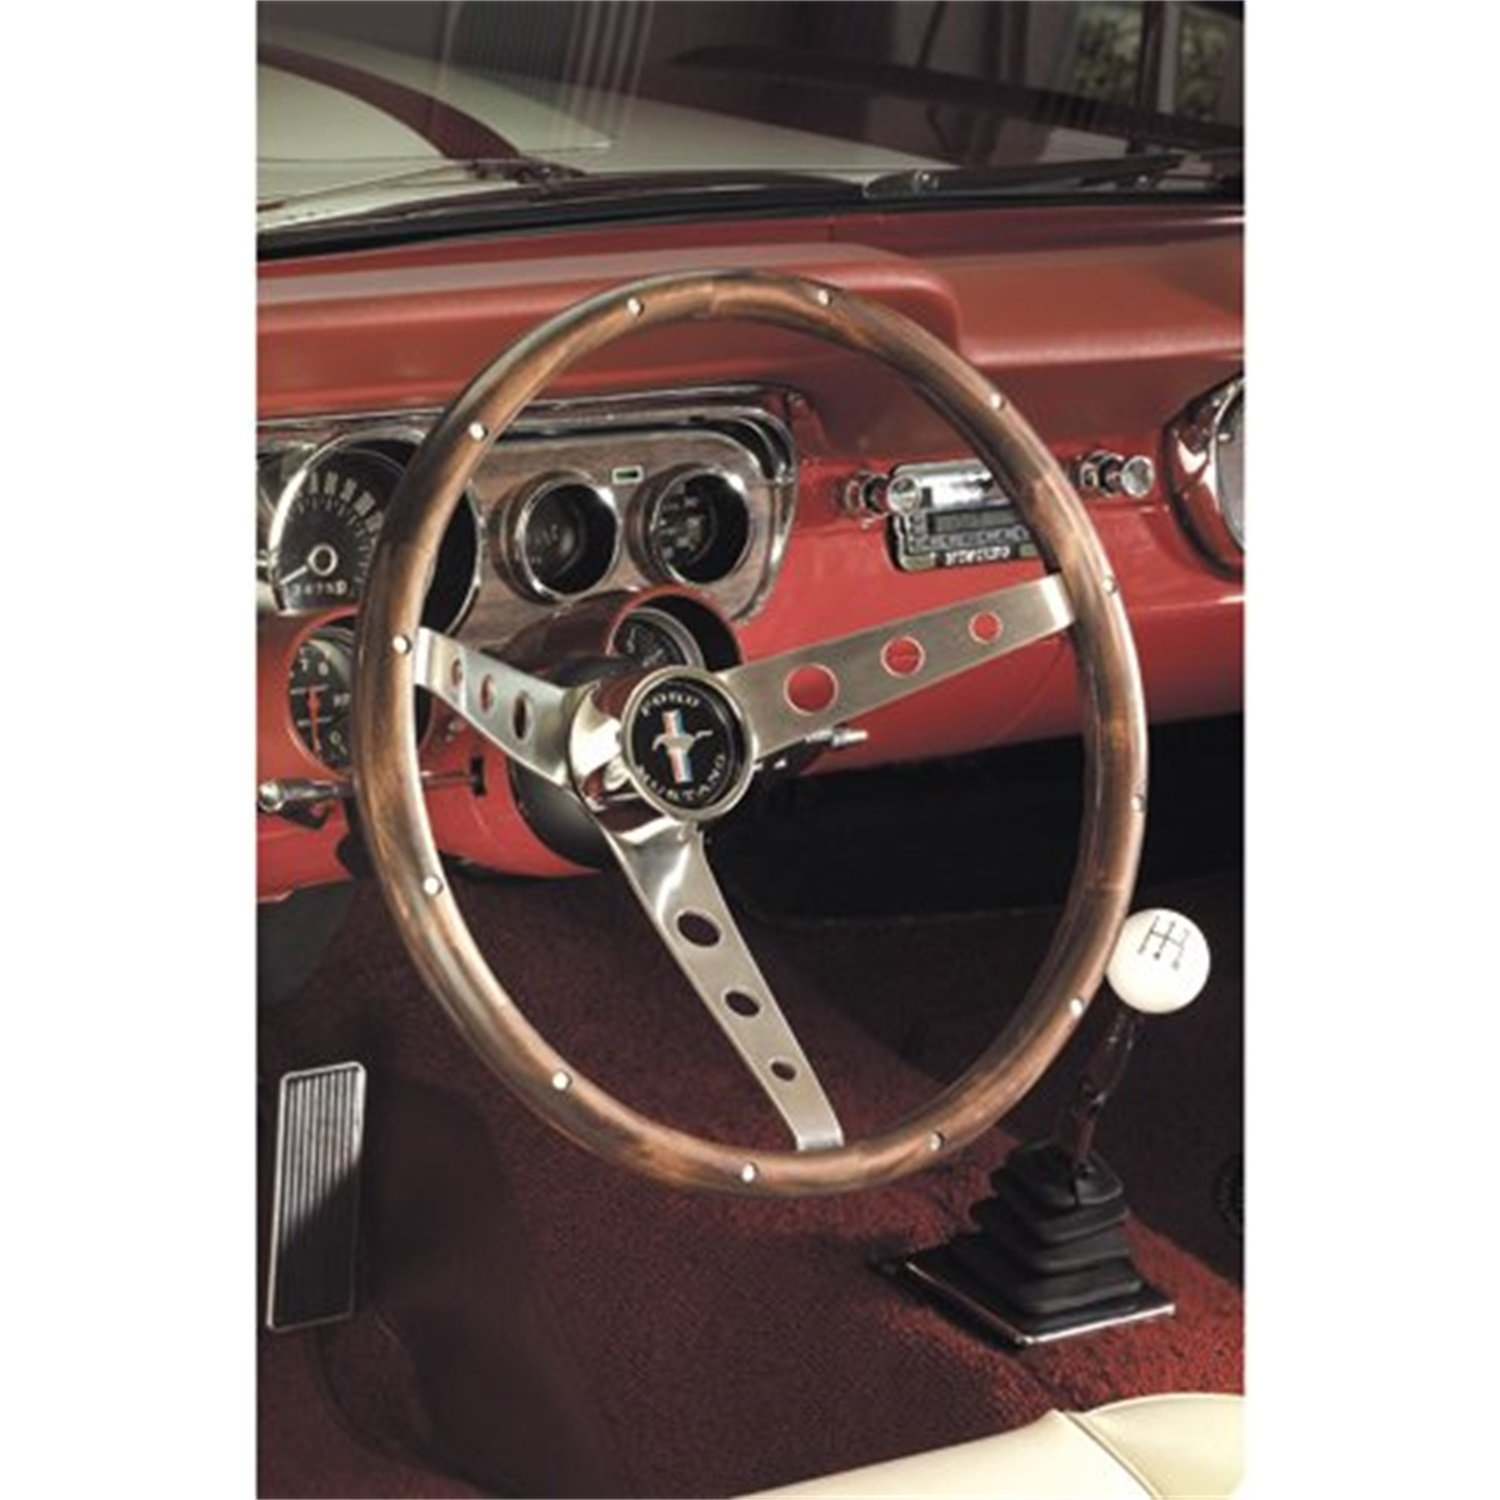 Amazon.com: Grant 963 Mustang Steering Wheel: Automotive